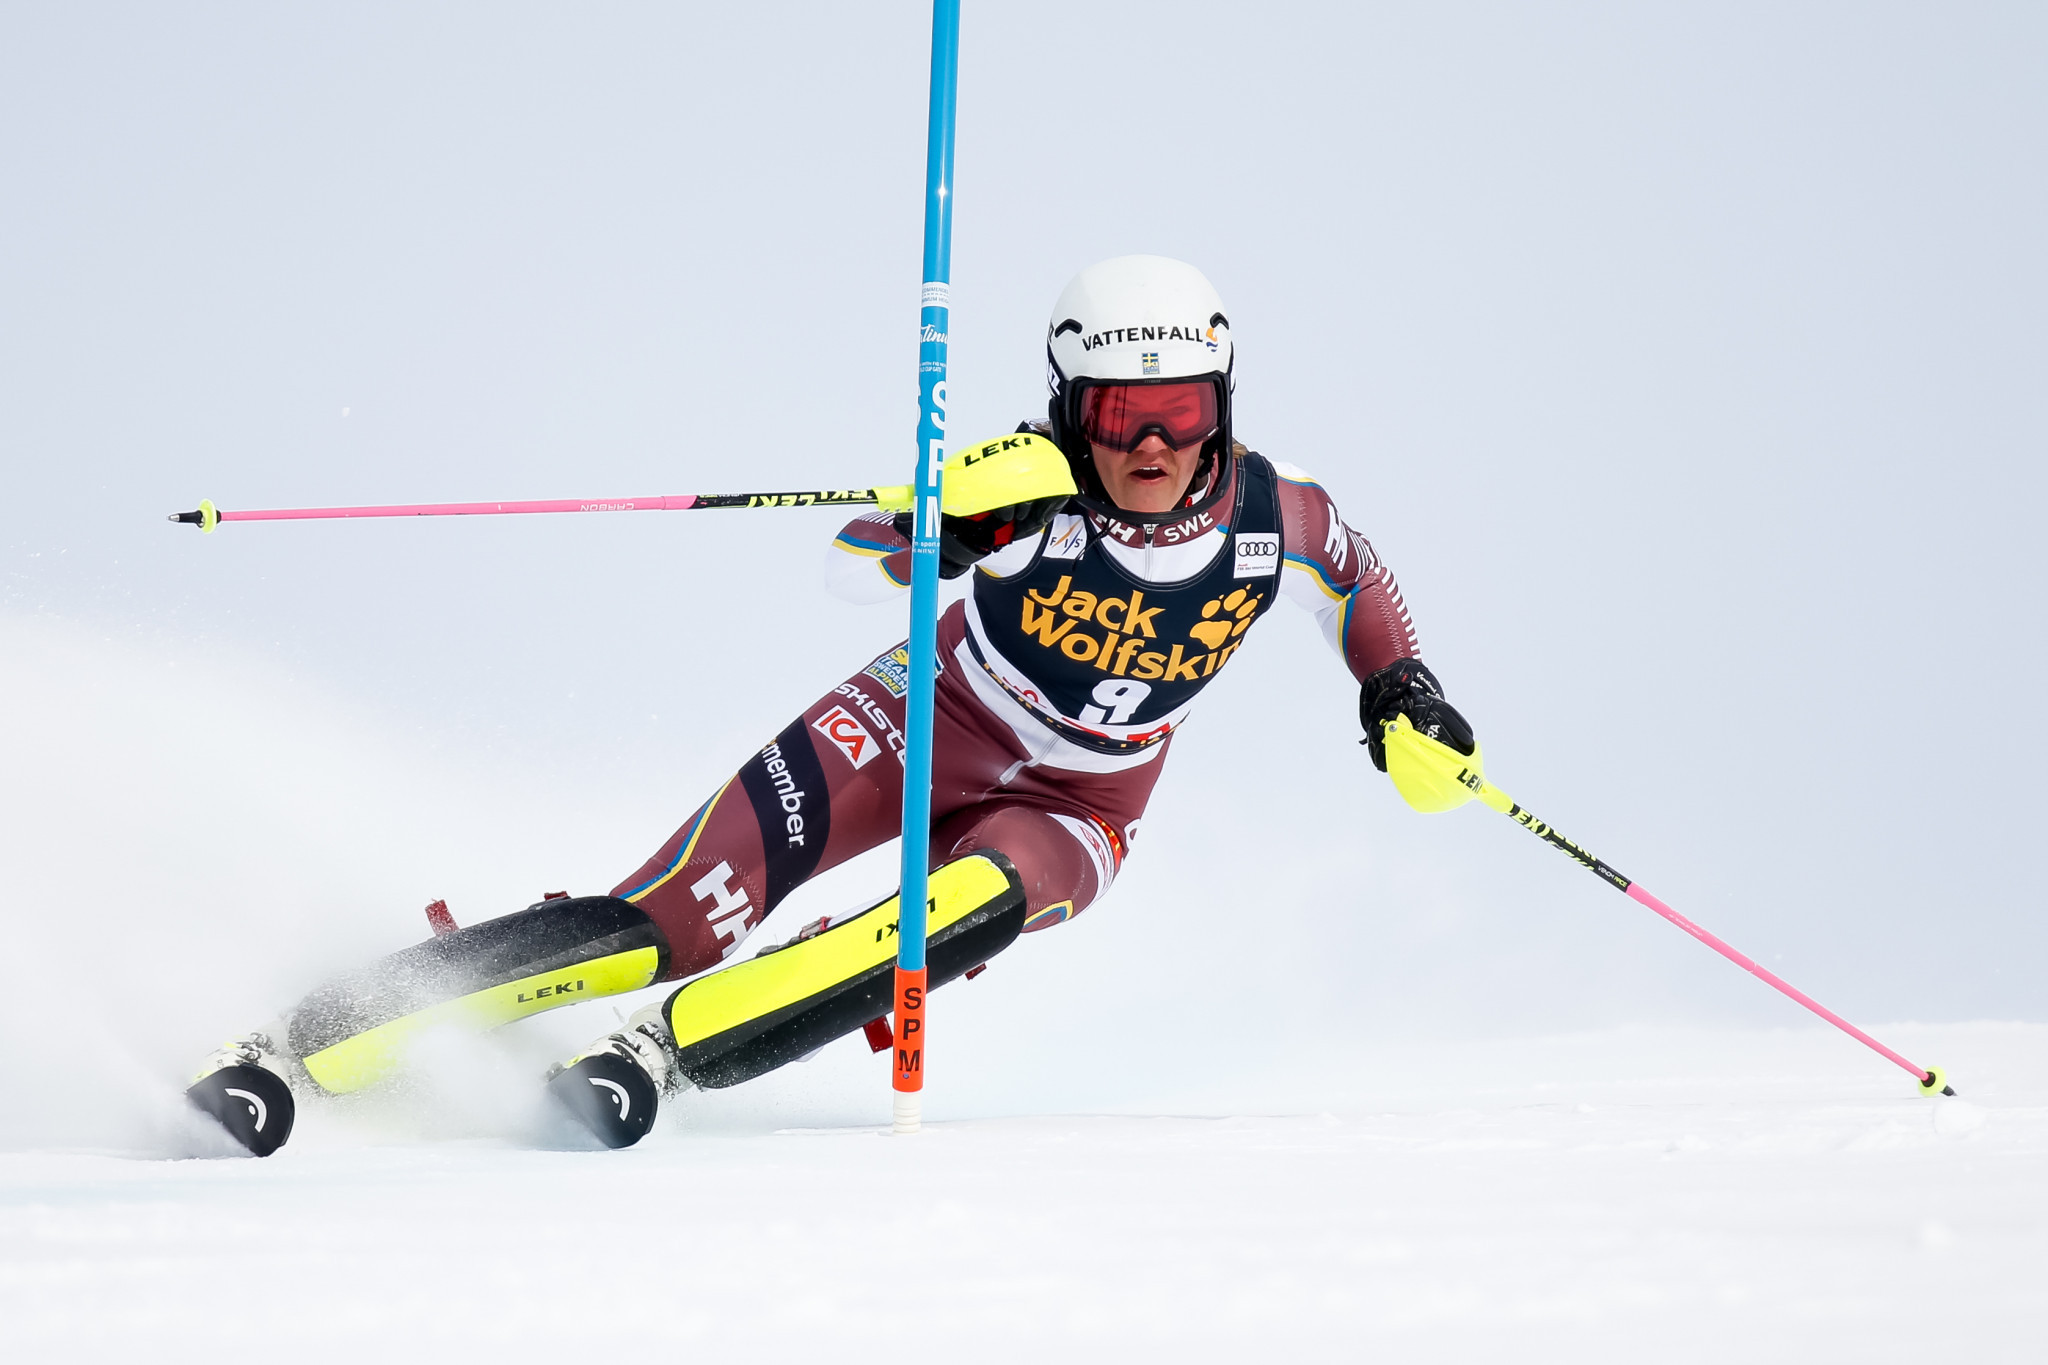 Anna Swenn-Larsson had led the competition but crashed on the final run ©Getty Images